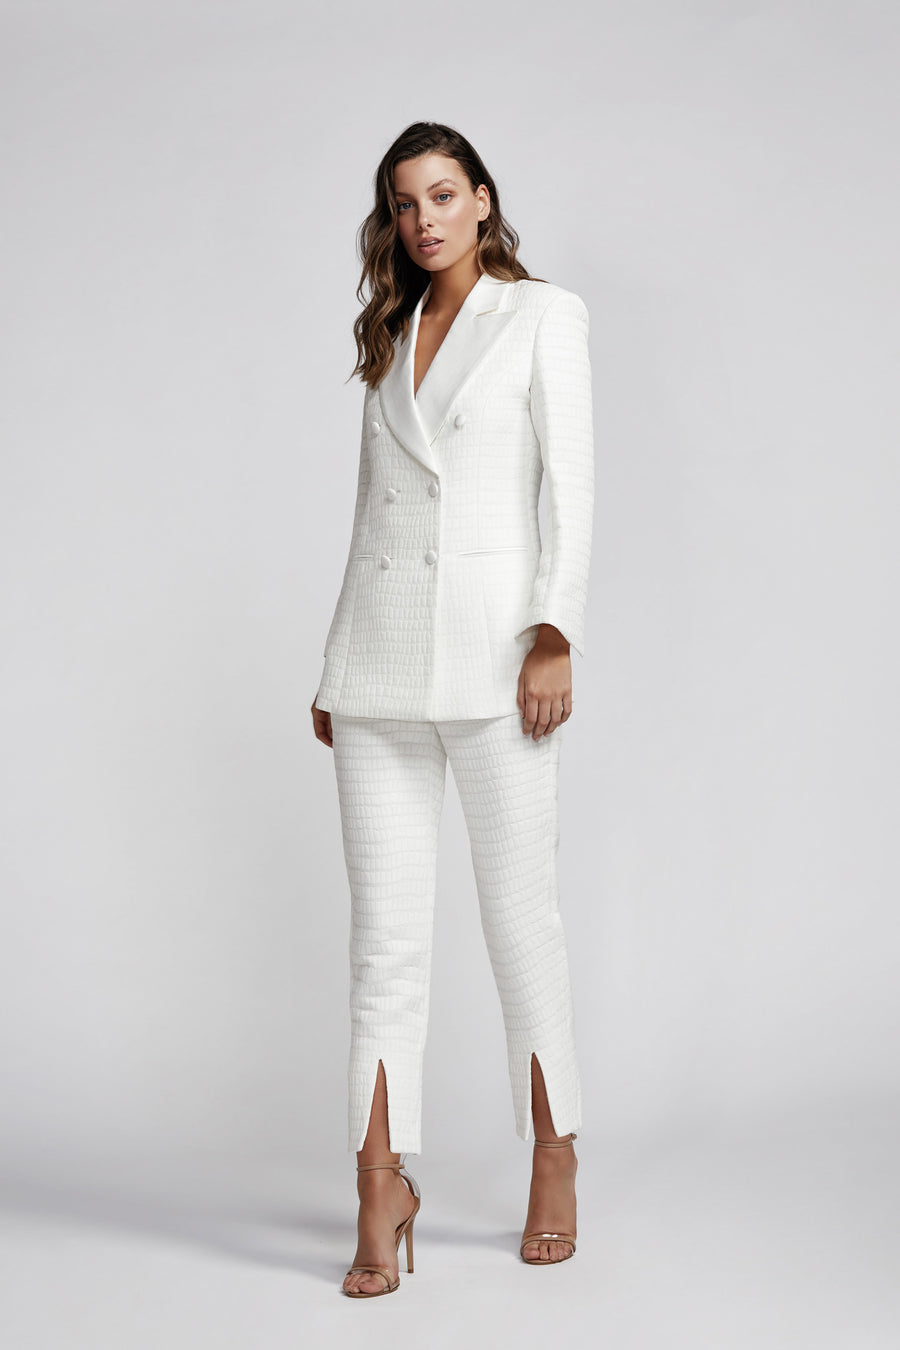 Evita Double Breasted Jacket - White